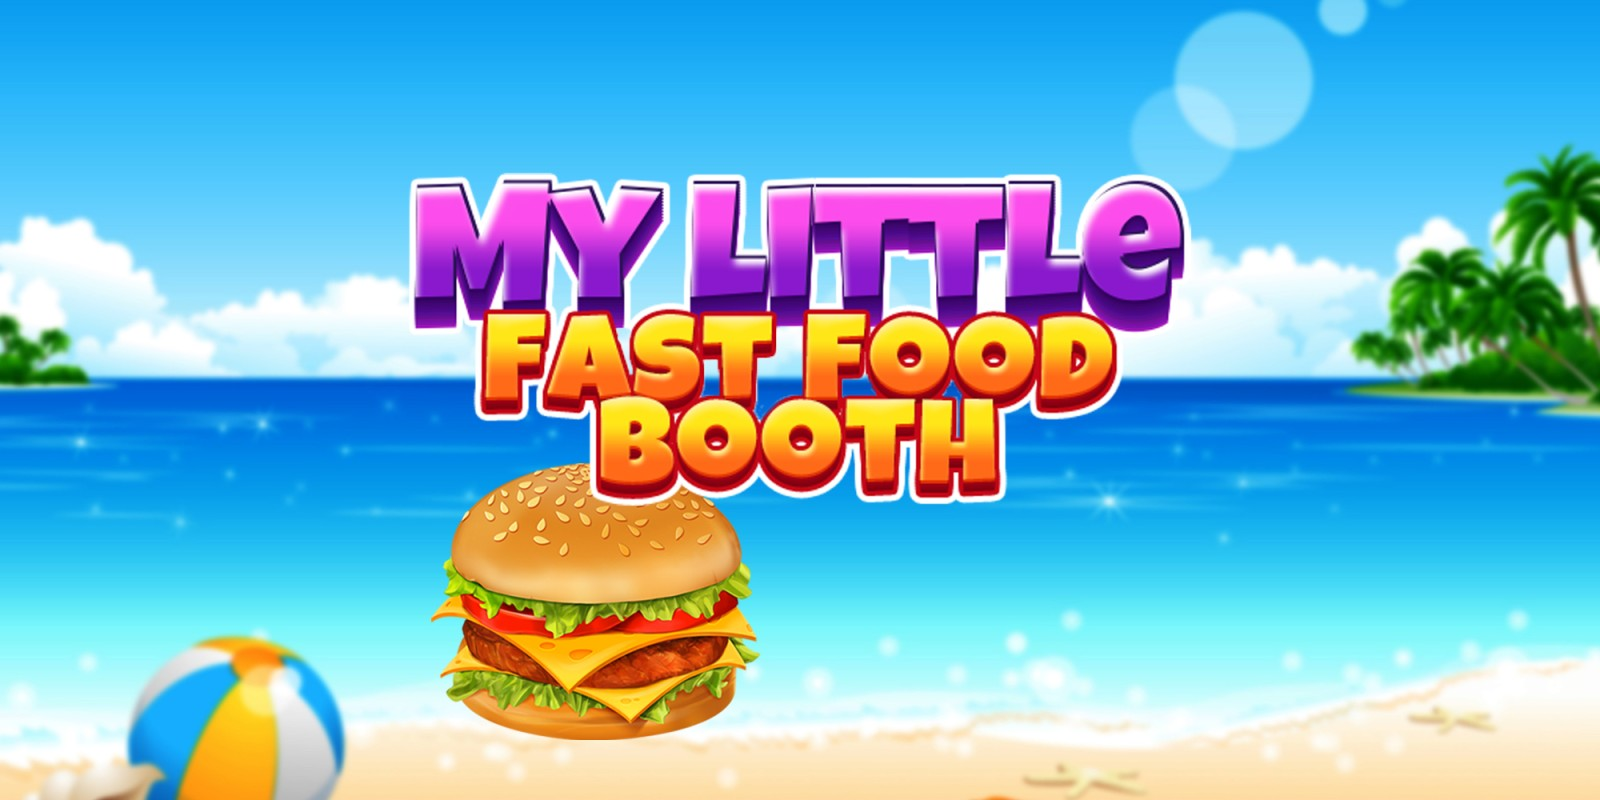 My little fast food booth